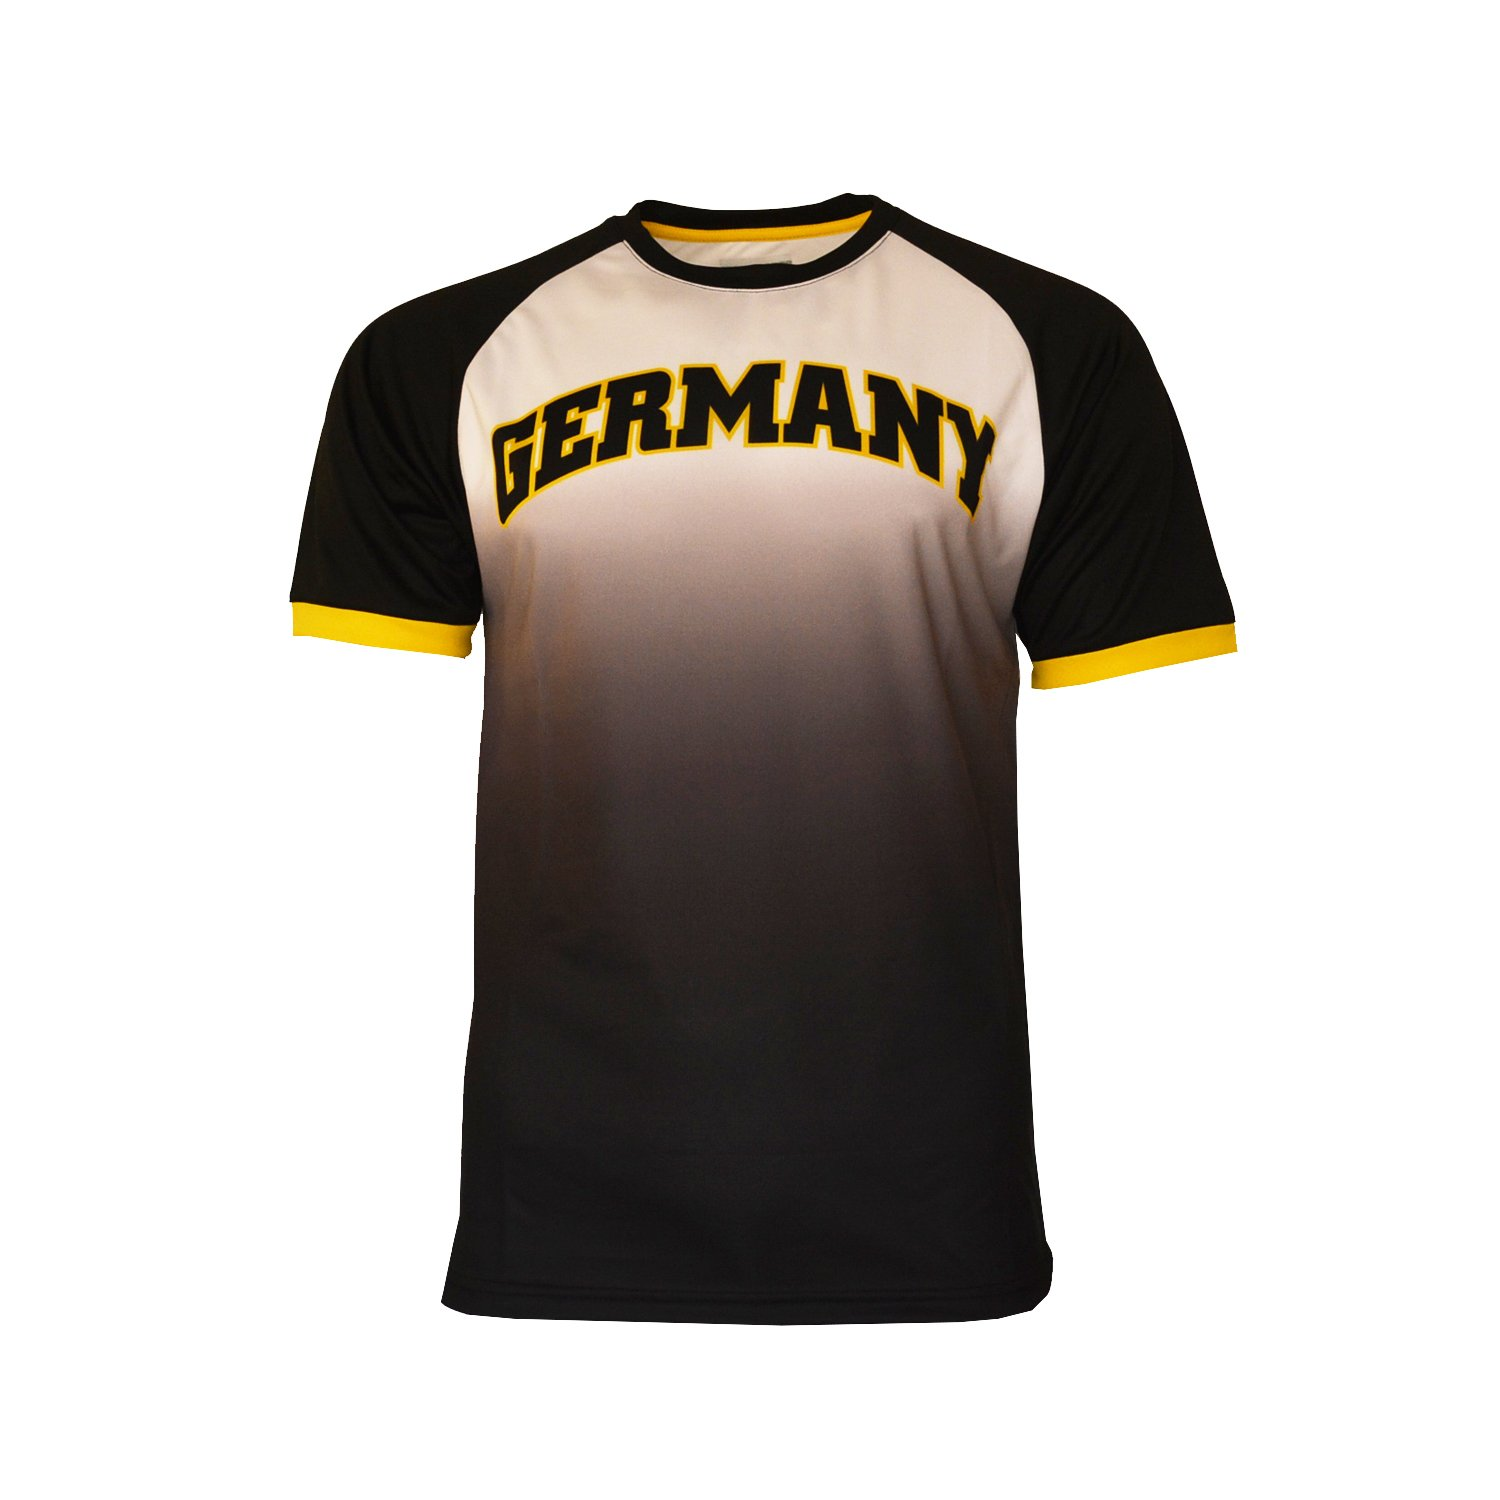 3984b1a6eff7 Amazon.com   Pana Germany Soccer Jersey Flag German Adult Training World  Cup Custom Name and Number   Sports   Outdoors